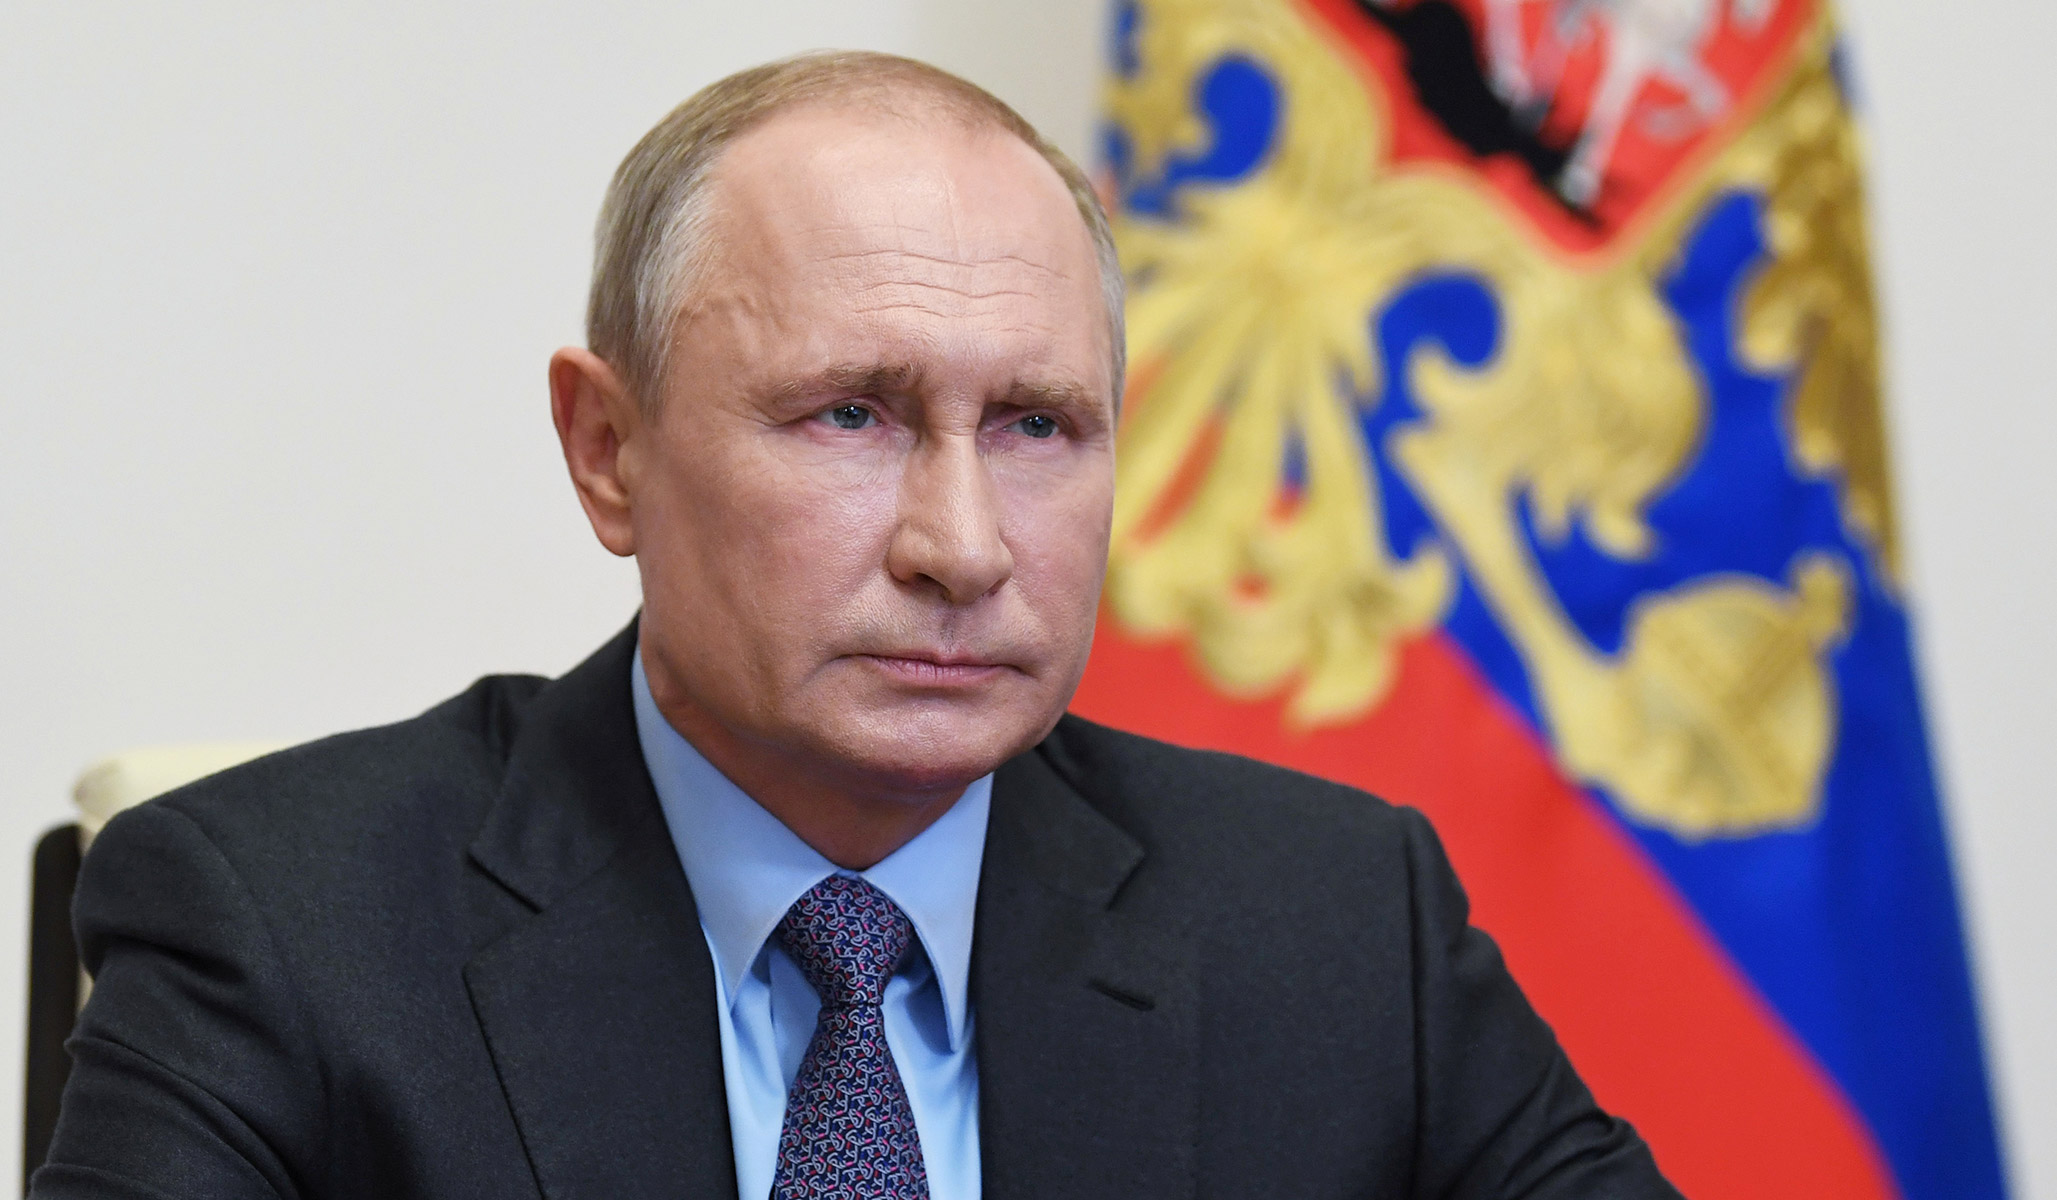 Russian Election Vladimir Putin Voters Approve Constitutional Reforms That Reject Modernity National Review